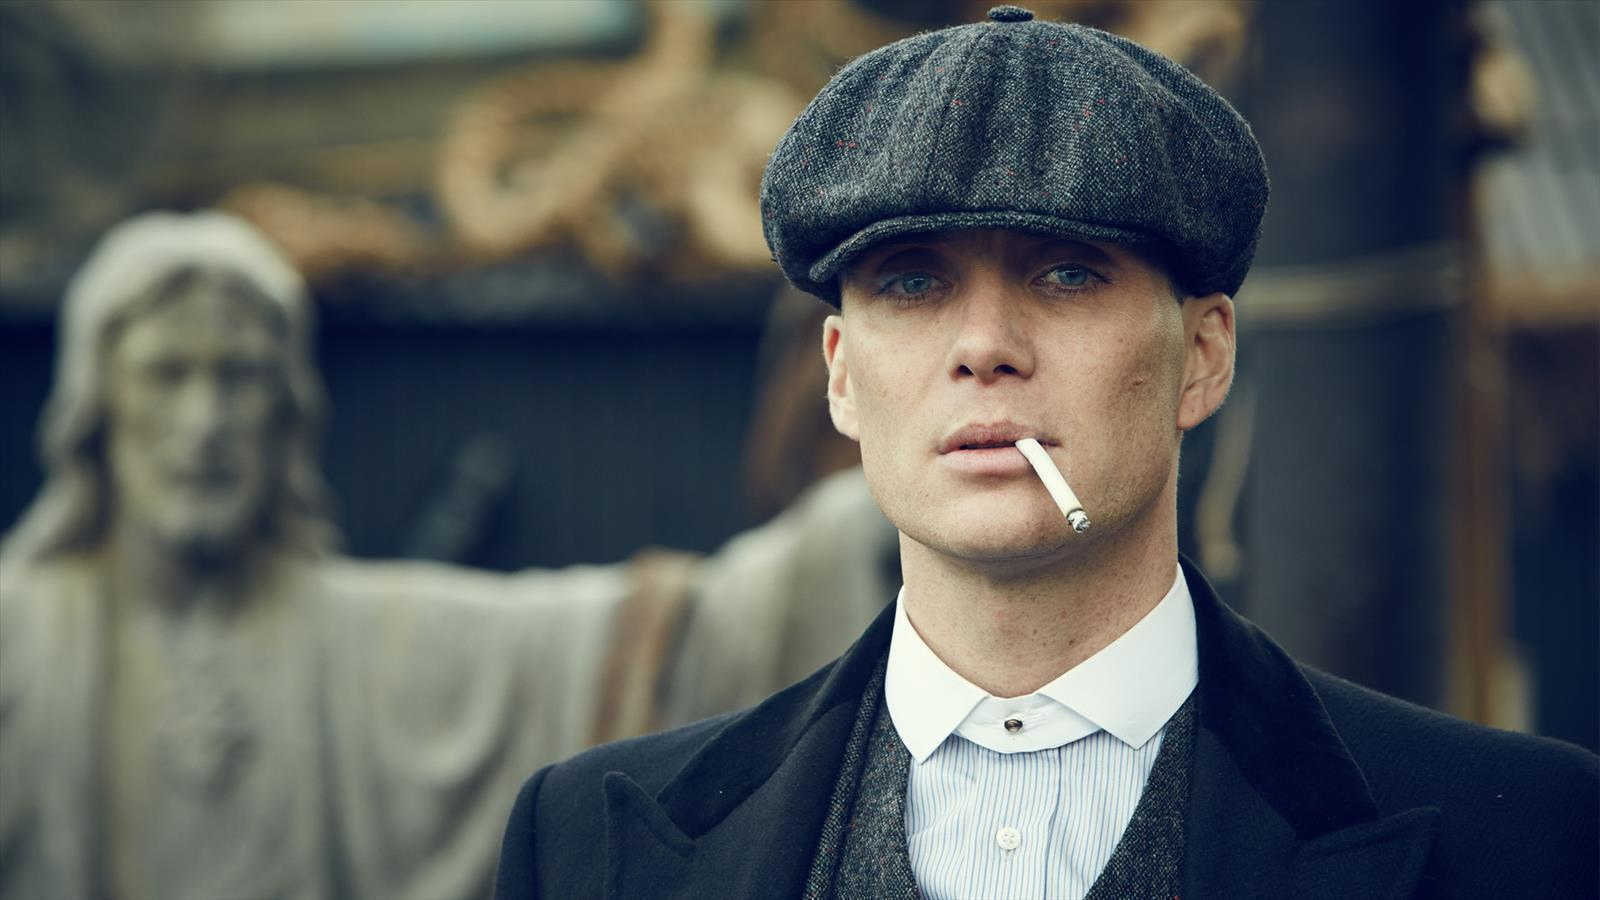 Thomas Shelby Desktop Wallpapers Top Free Thomas Shelby Desktop Backgrounds Wallpaperaccess